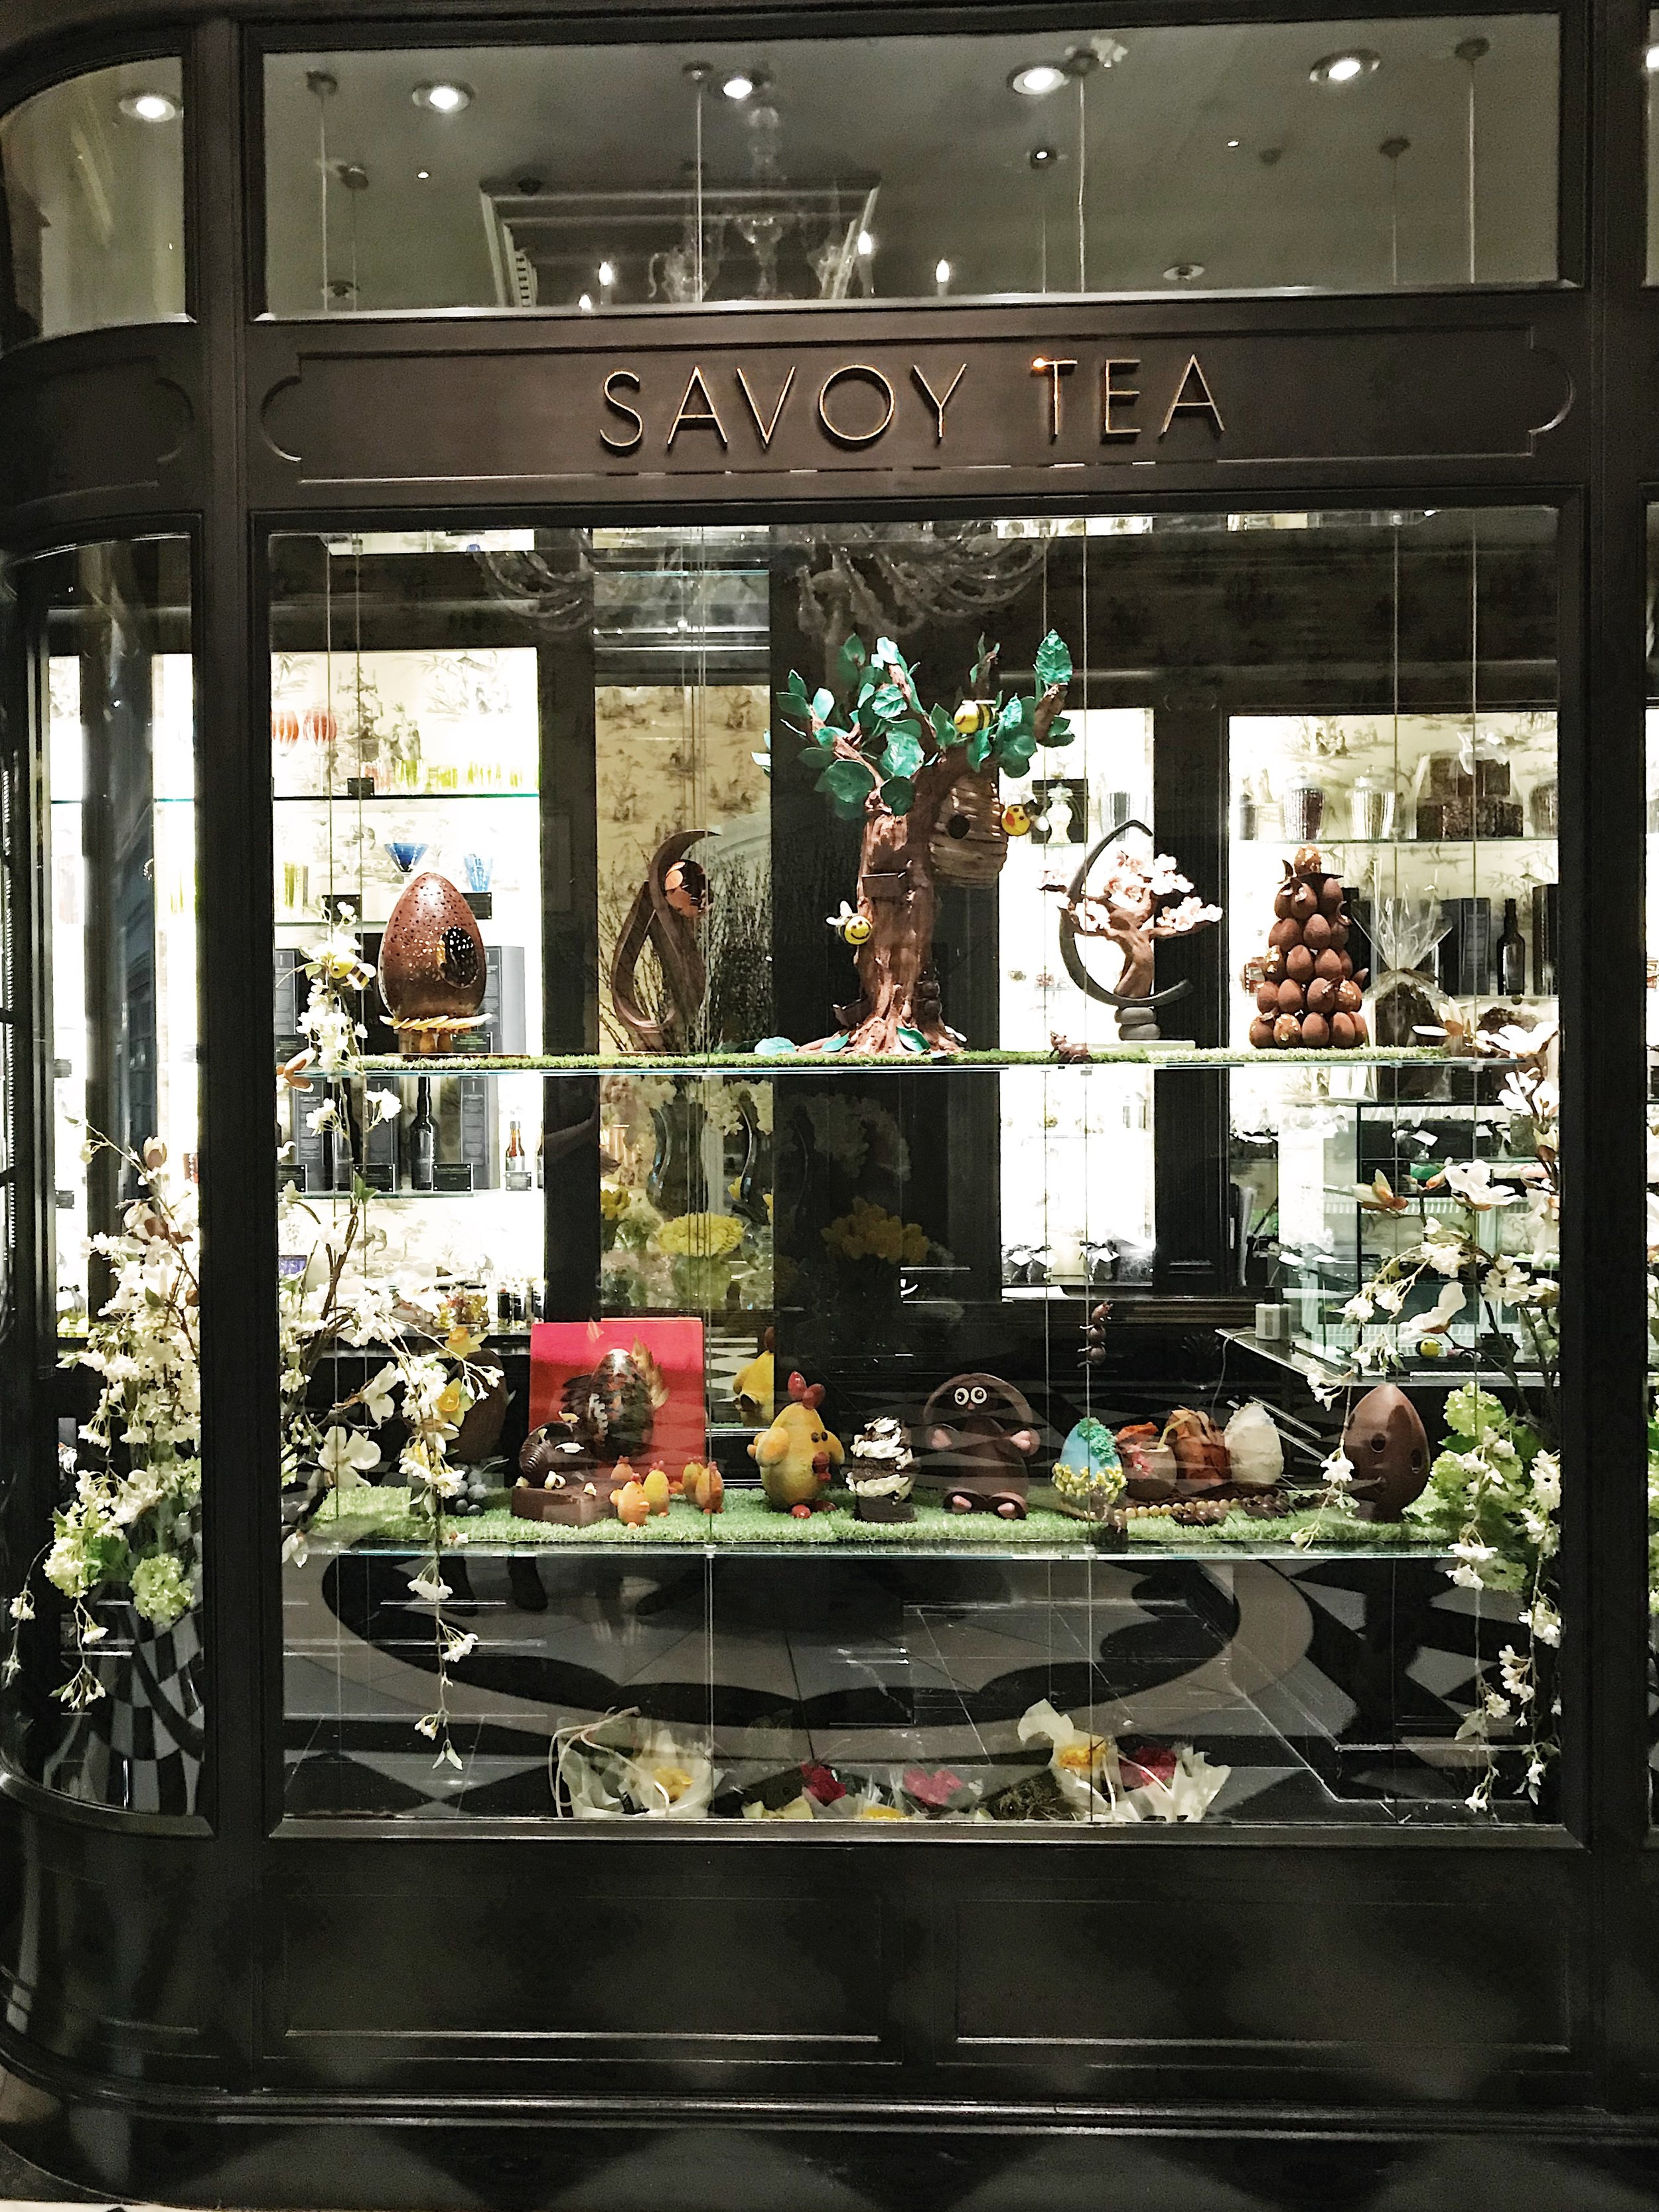 The Savoy Tea Shop with its Easter Egg display